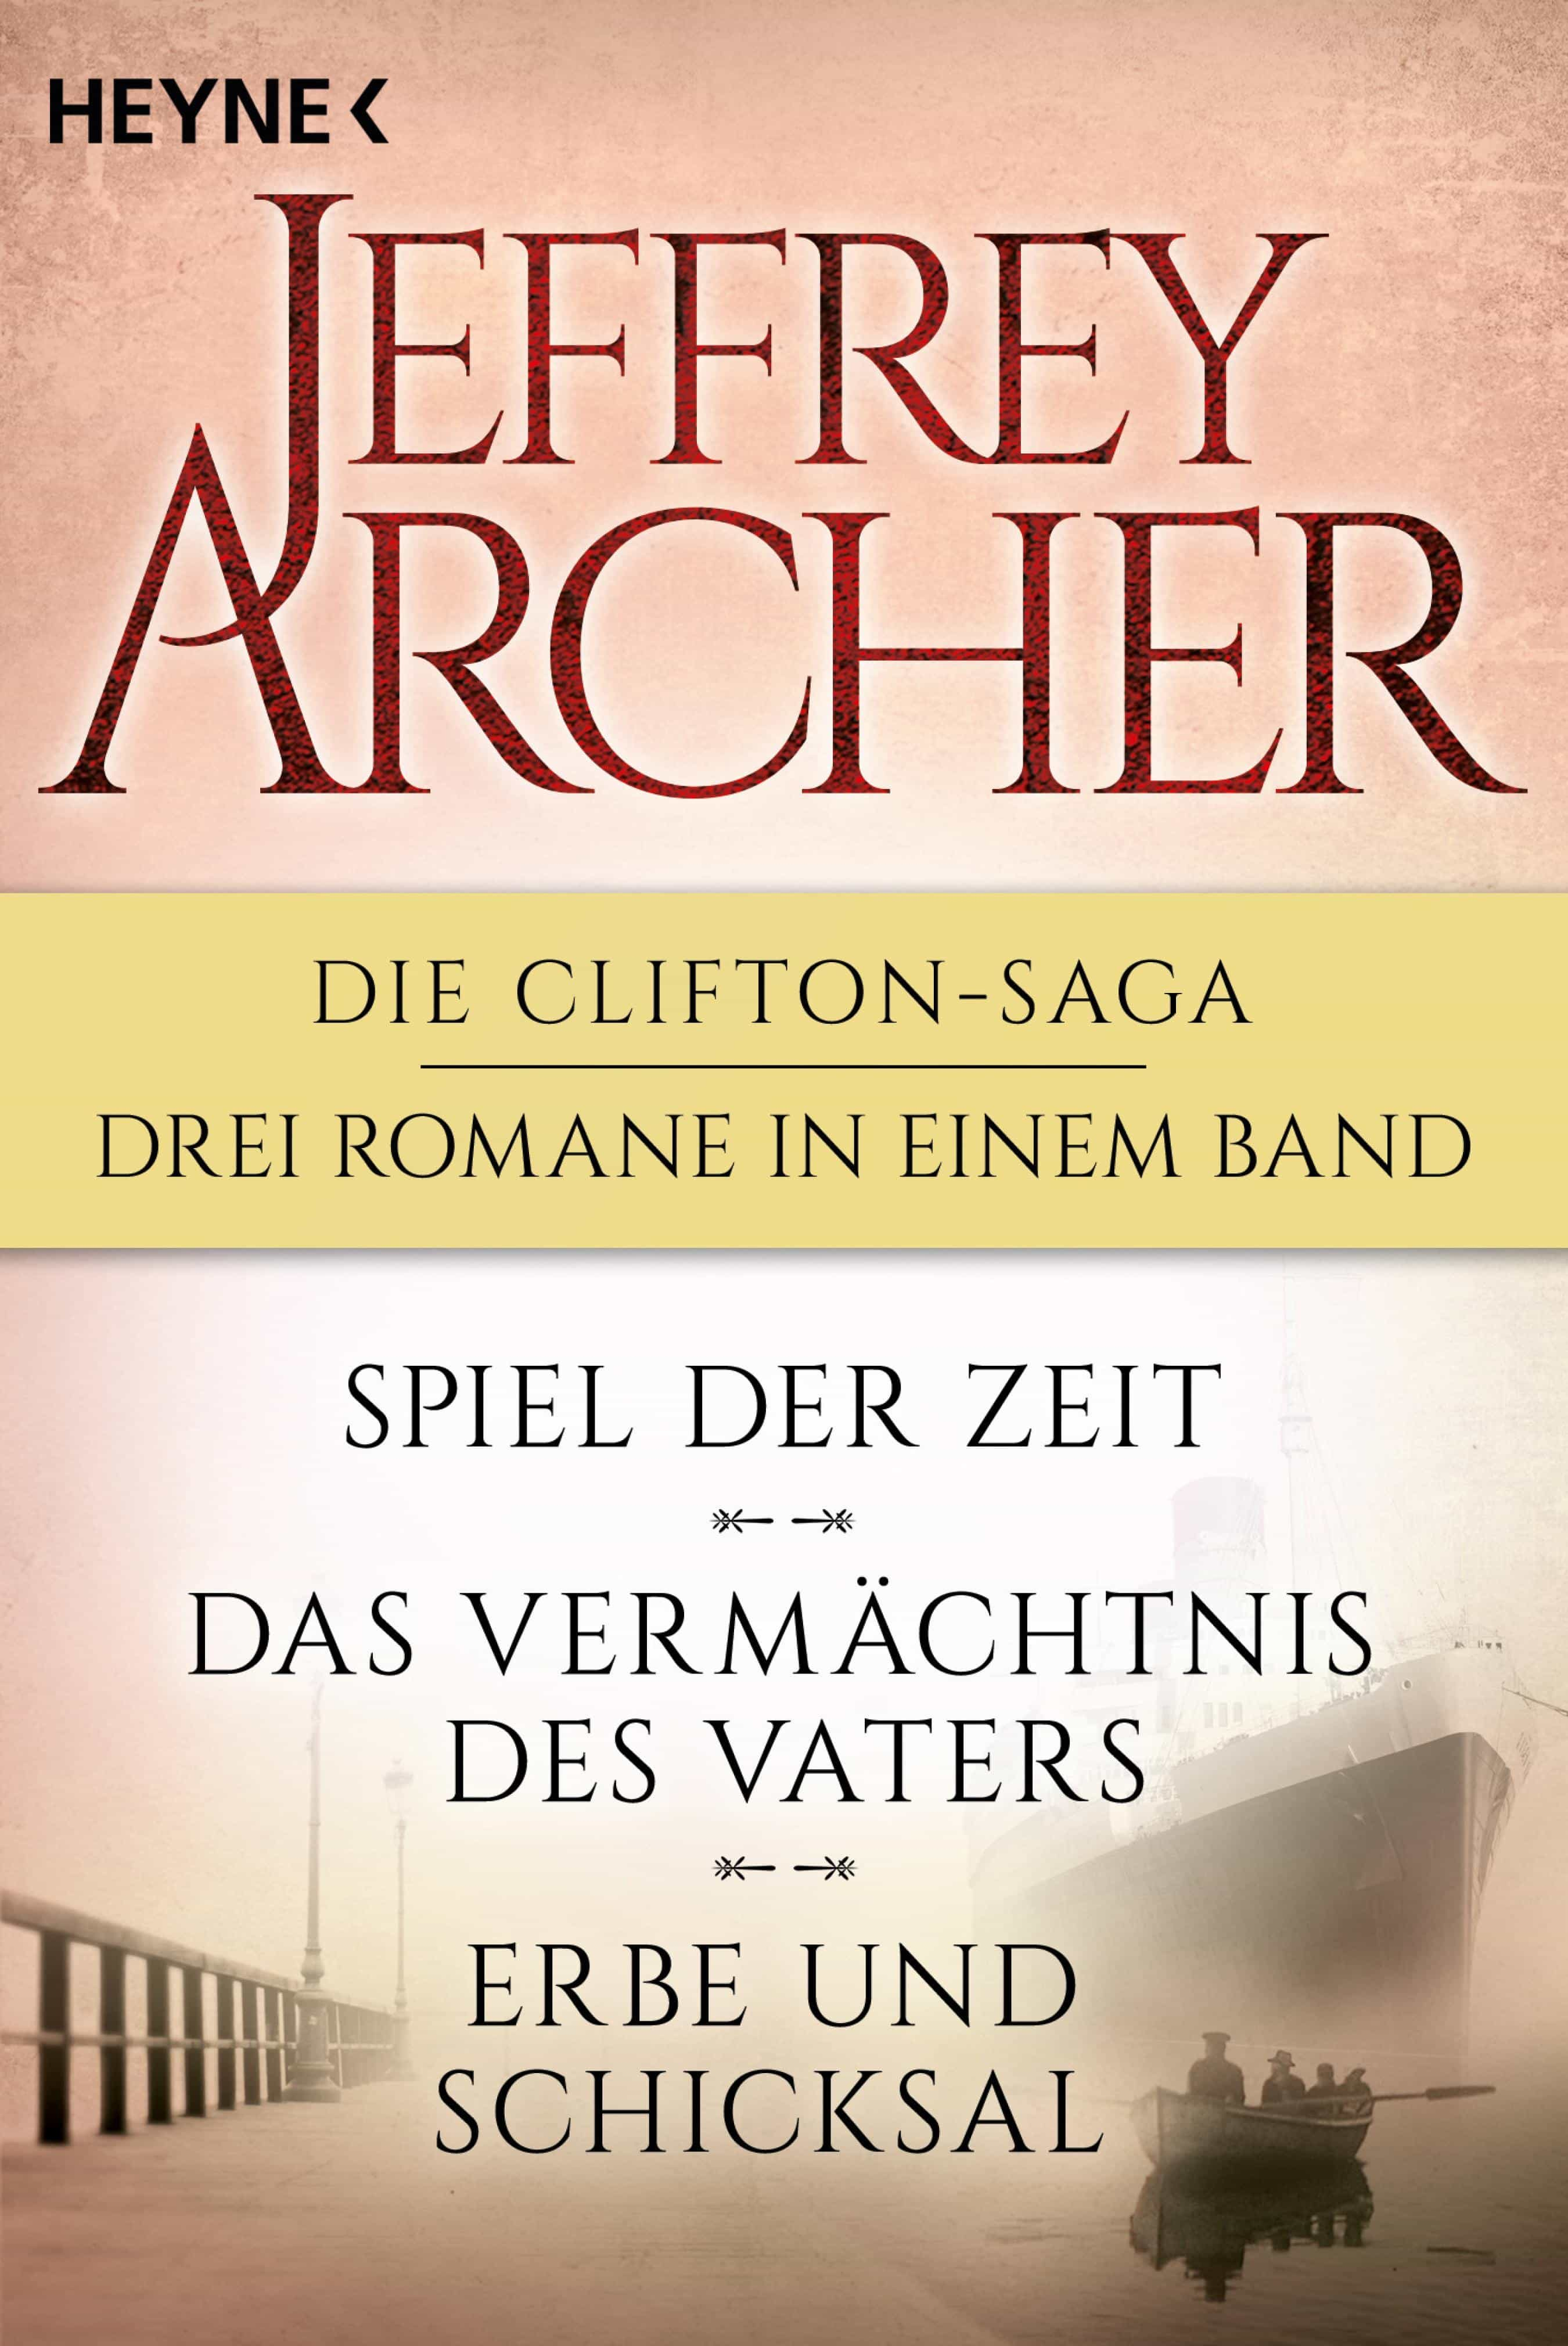 Jeffrey Archer Libros Die Clifton Saga 1 3 Spiel Der Zeit Das VermÄchtnis Des Vaters Erbe Und Schicksal 3in1 Bundle Ebook Jeffrey Archer Descargar Libro Pdf O